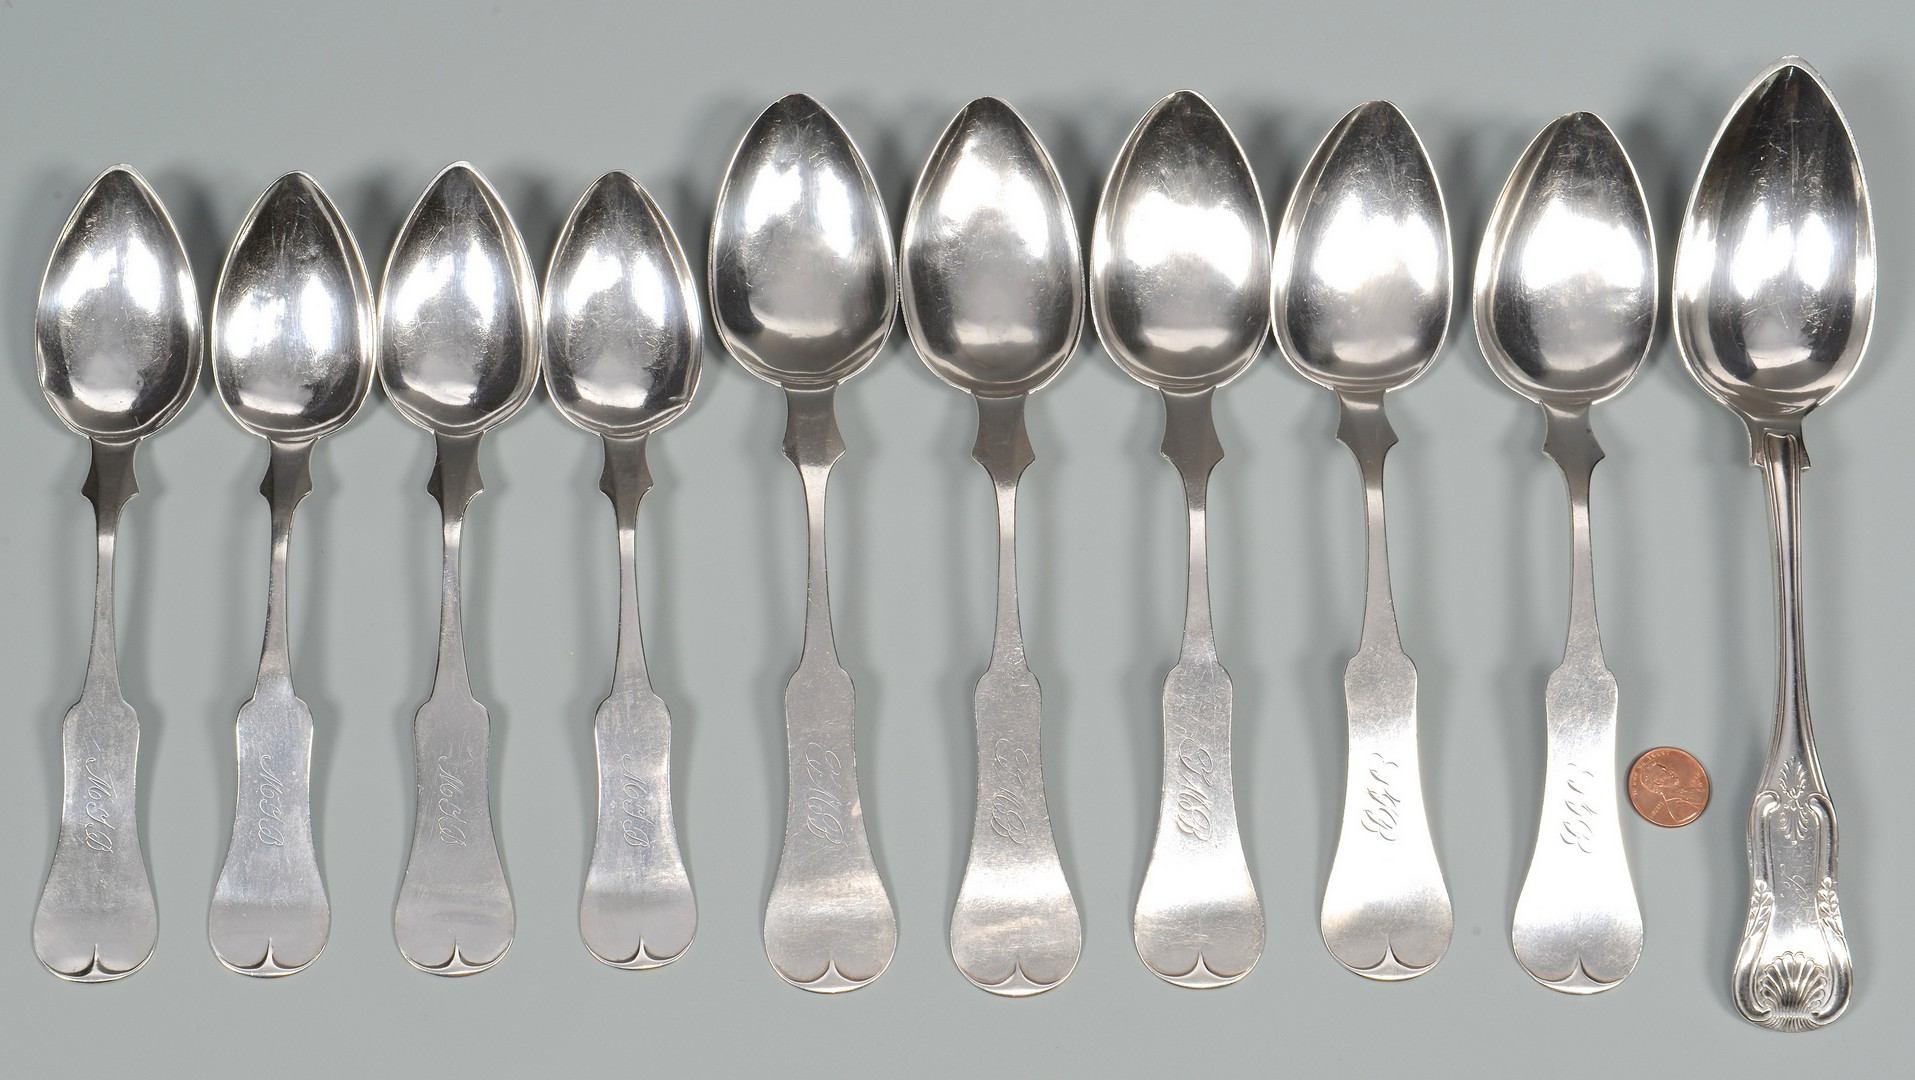 Lot 51: 10 Lexington, KY coin silver spoons